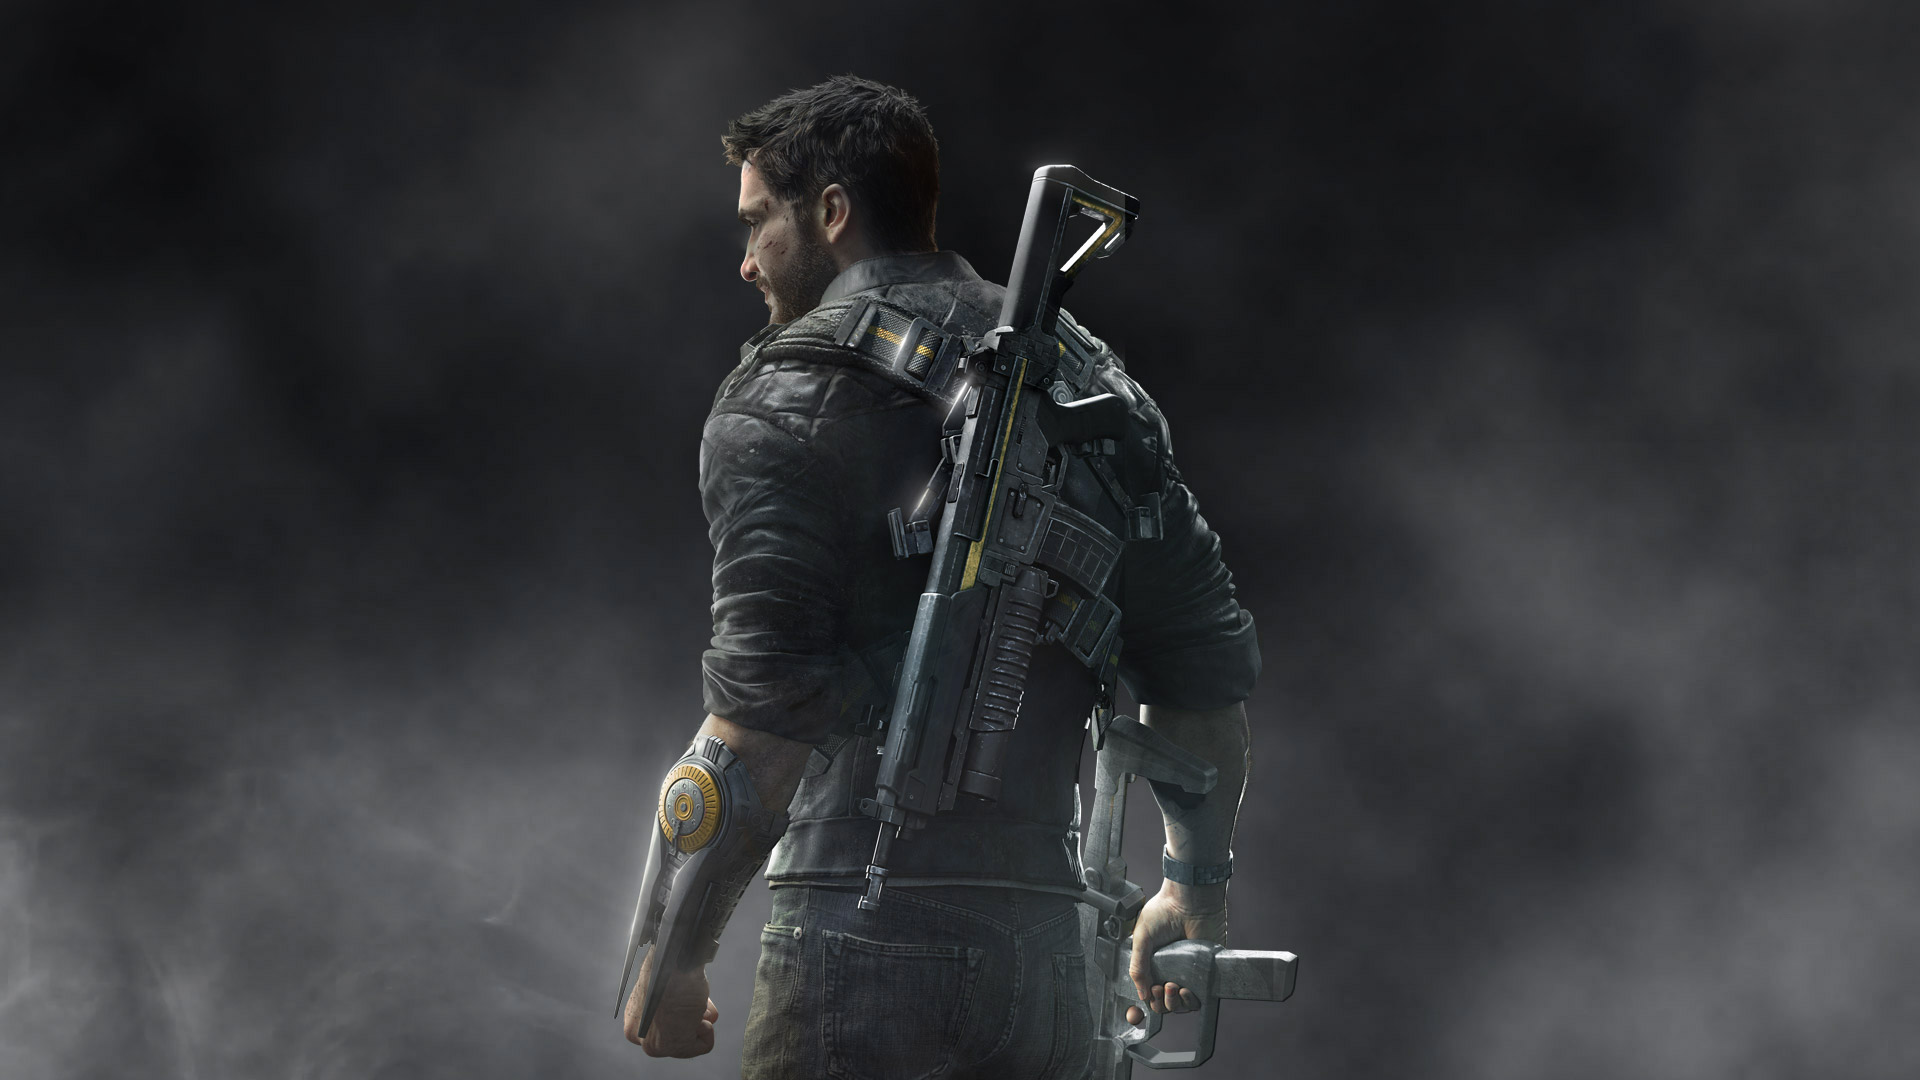 Just Cause 4 Wallpaper: Rico Rodriguez In Just Cause 4, HD Games, 4k Wallpapers